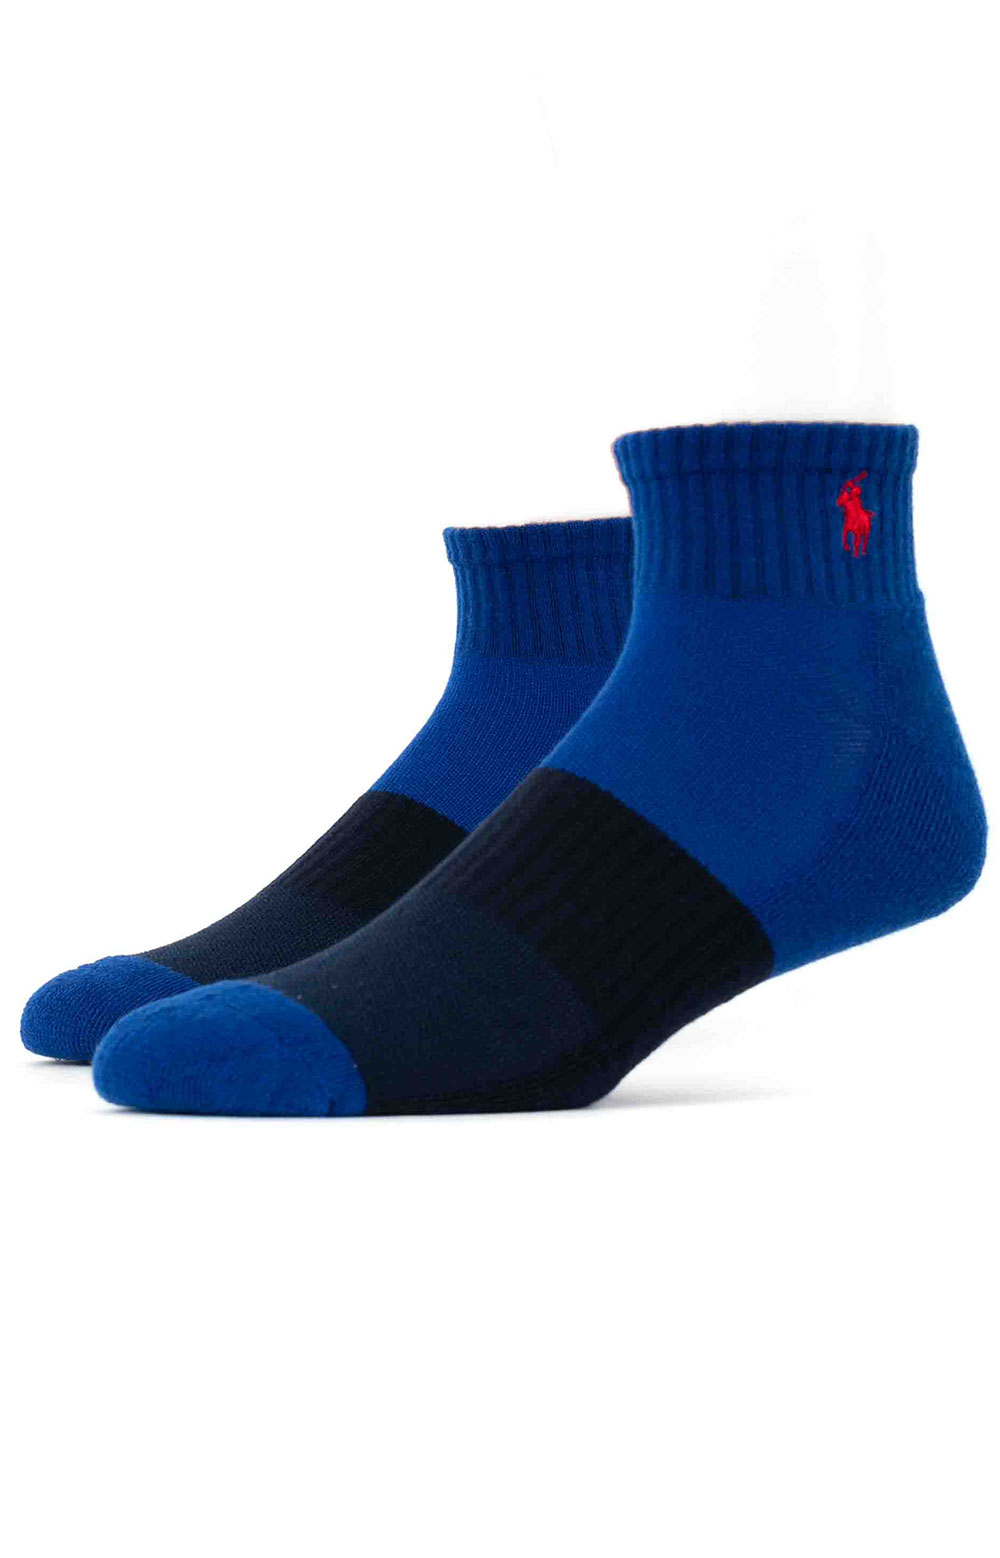 Colorblock Cushioned Quarter Socks - 6 Pack 14